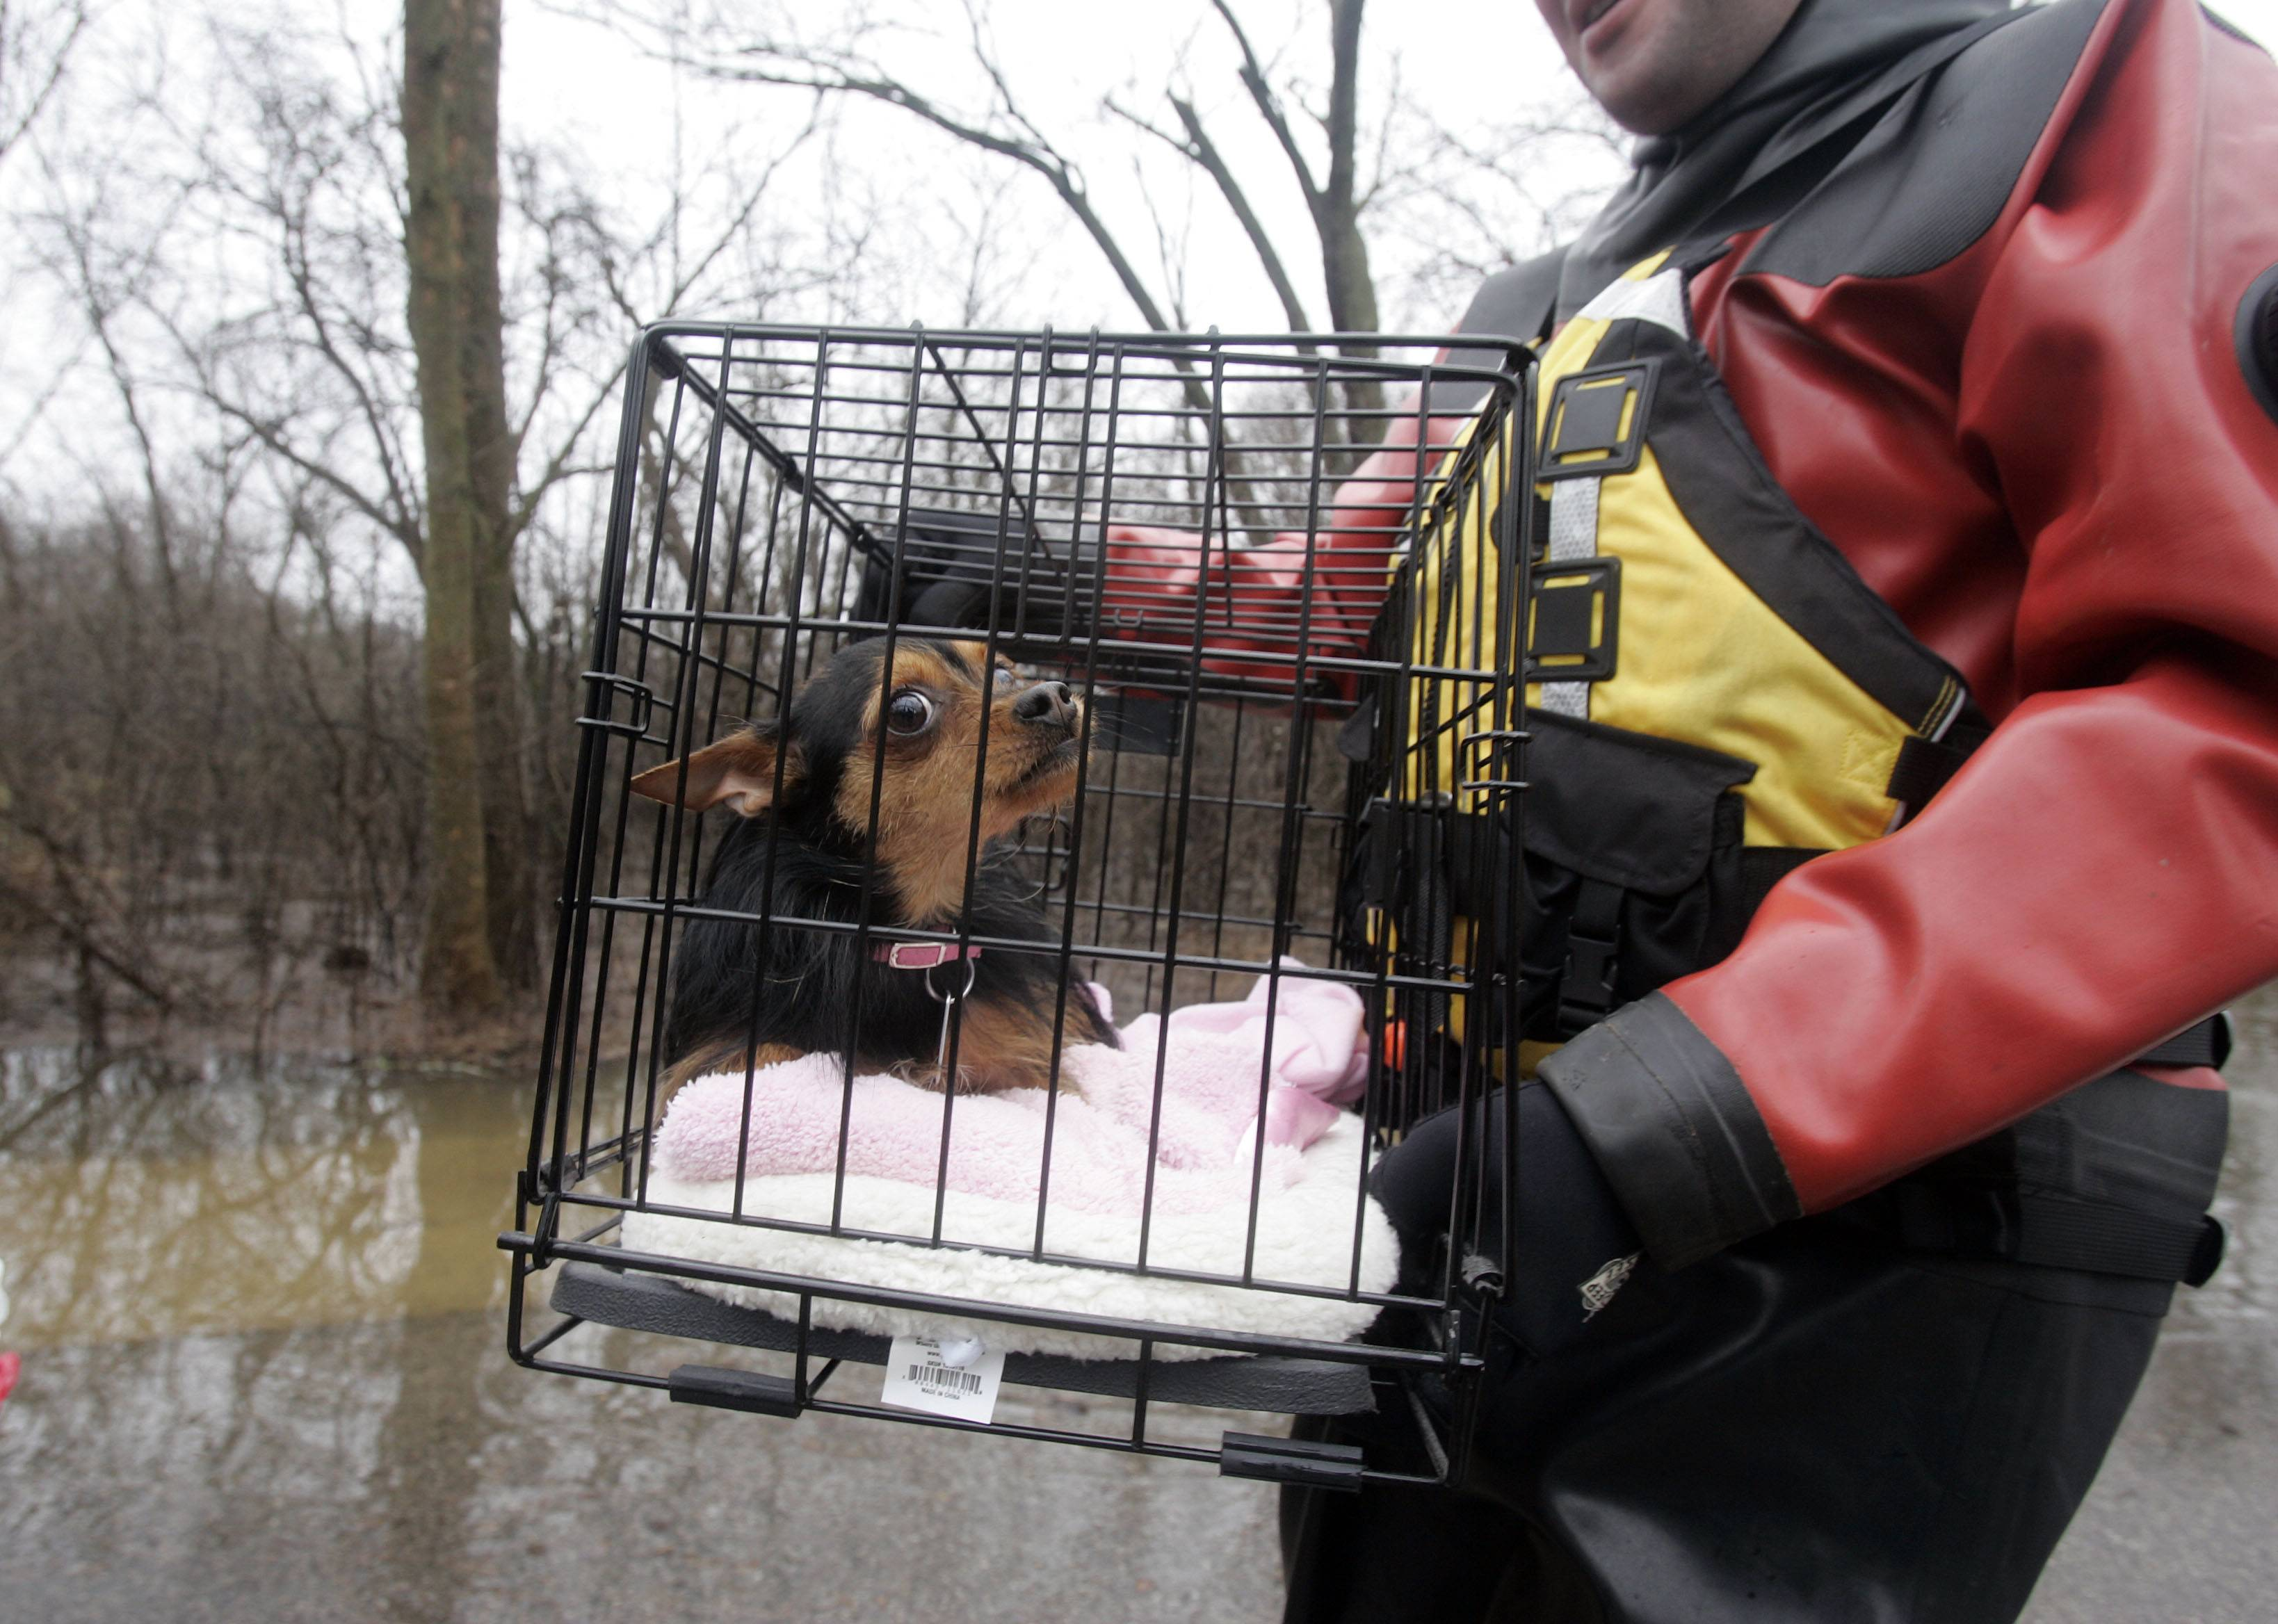 Firefighter Nick Beauchaine of the East Dundee Fire Protection District carries a scared Roxi after helping her owner, Barrie Komorski, from their home on along the Fox River near East Dundee last April.